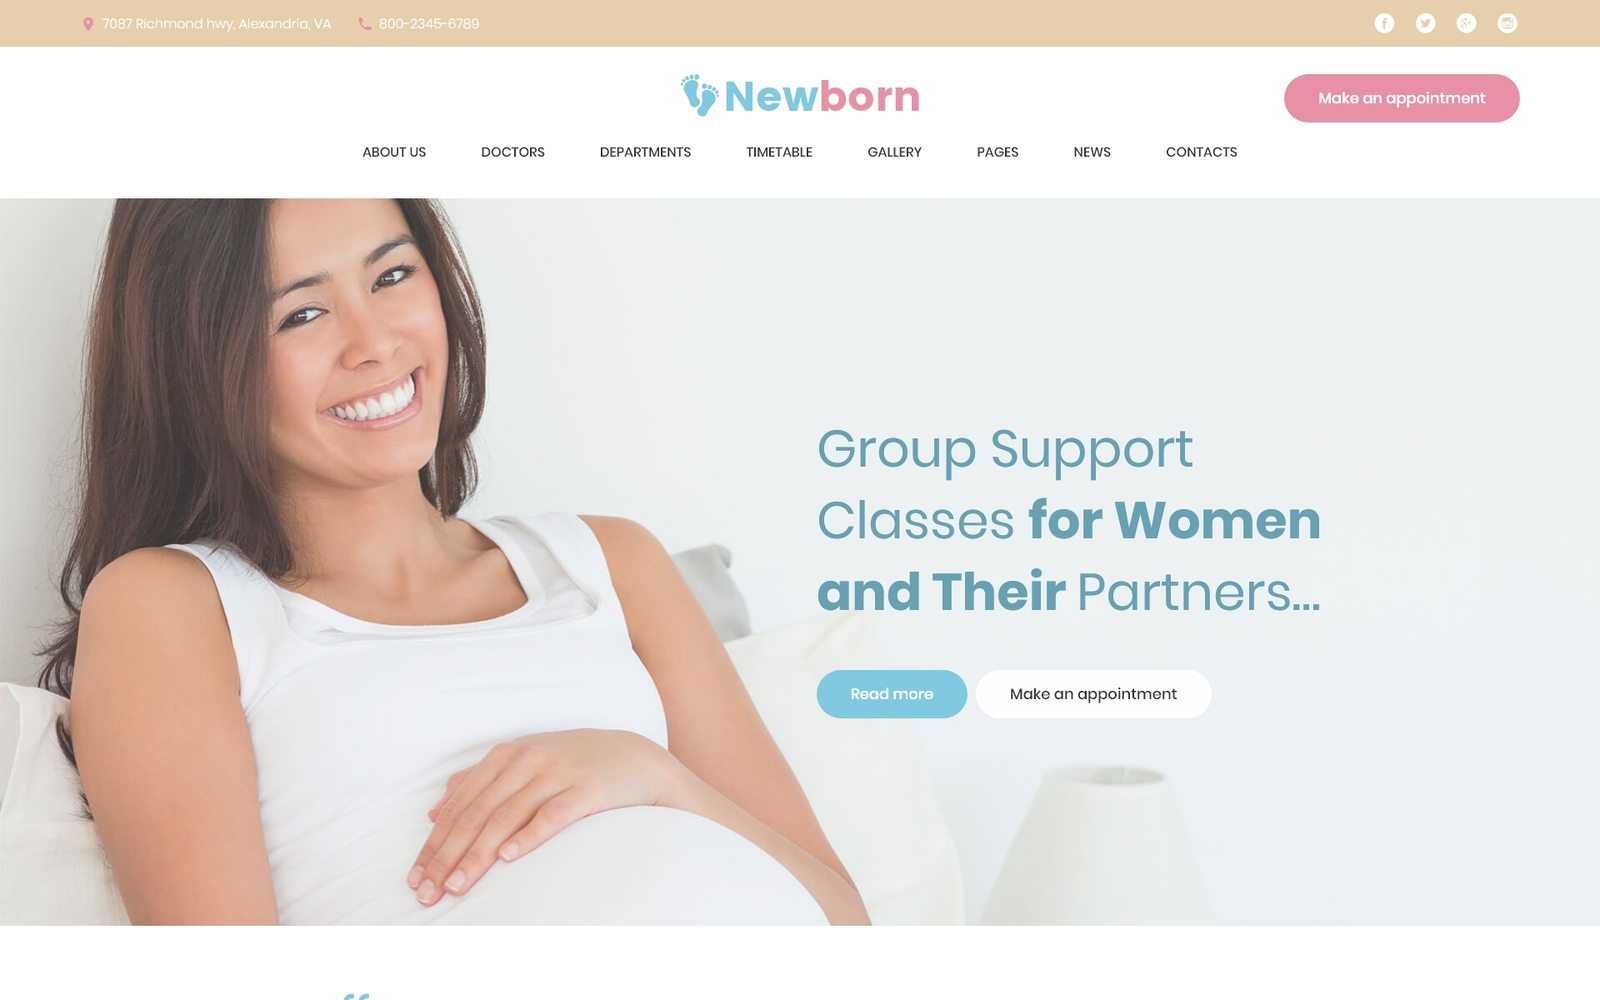 Responsive Newborn - Pregnancy Support Center Wordpress #61241